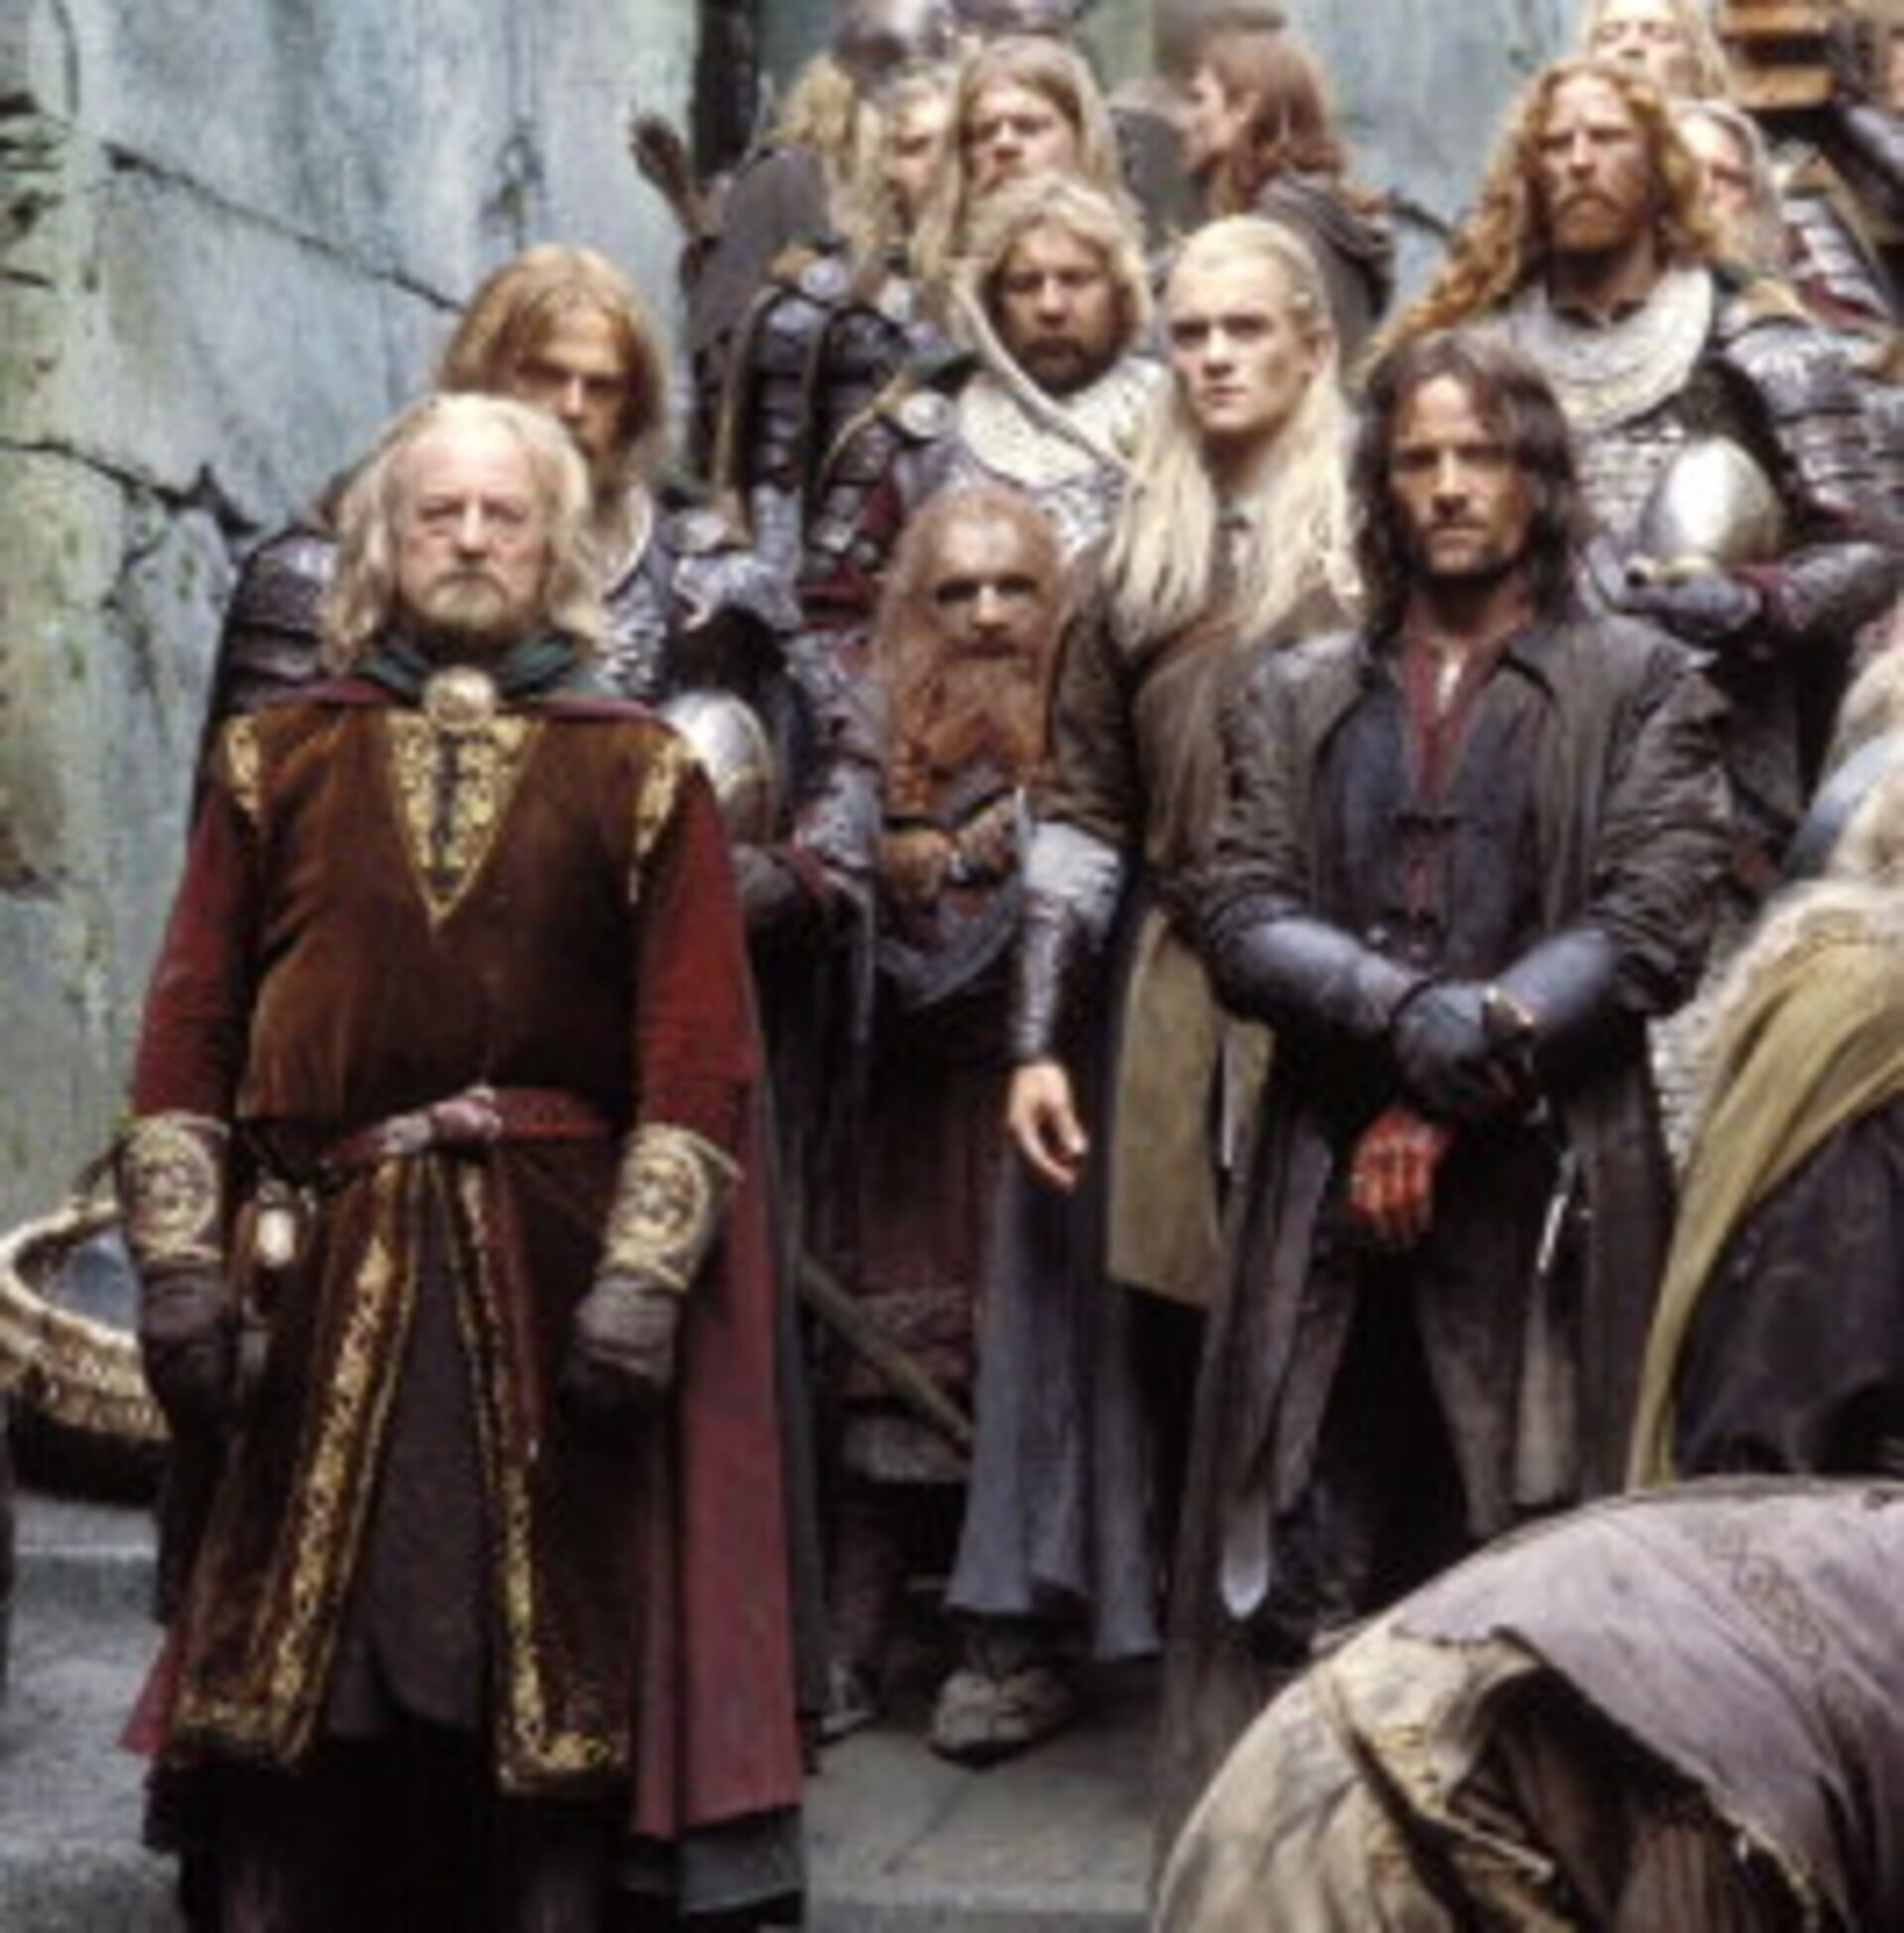 The Lord of the Rings: The Two Towers - Image 70